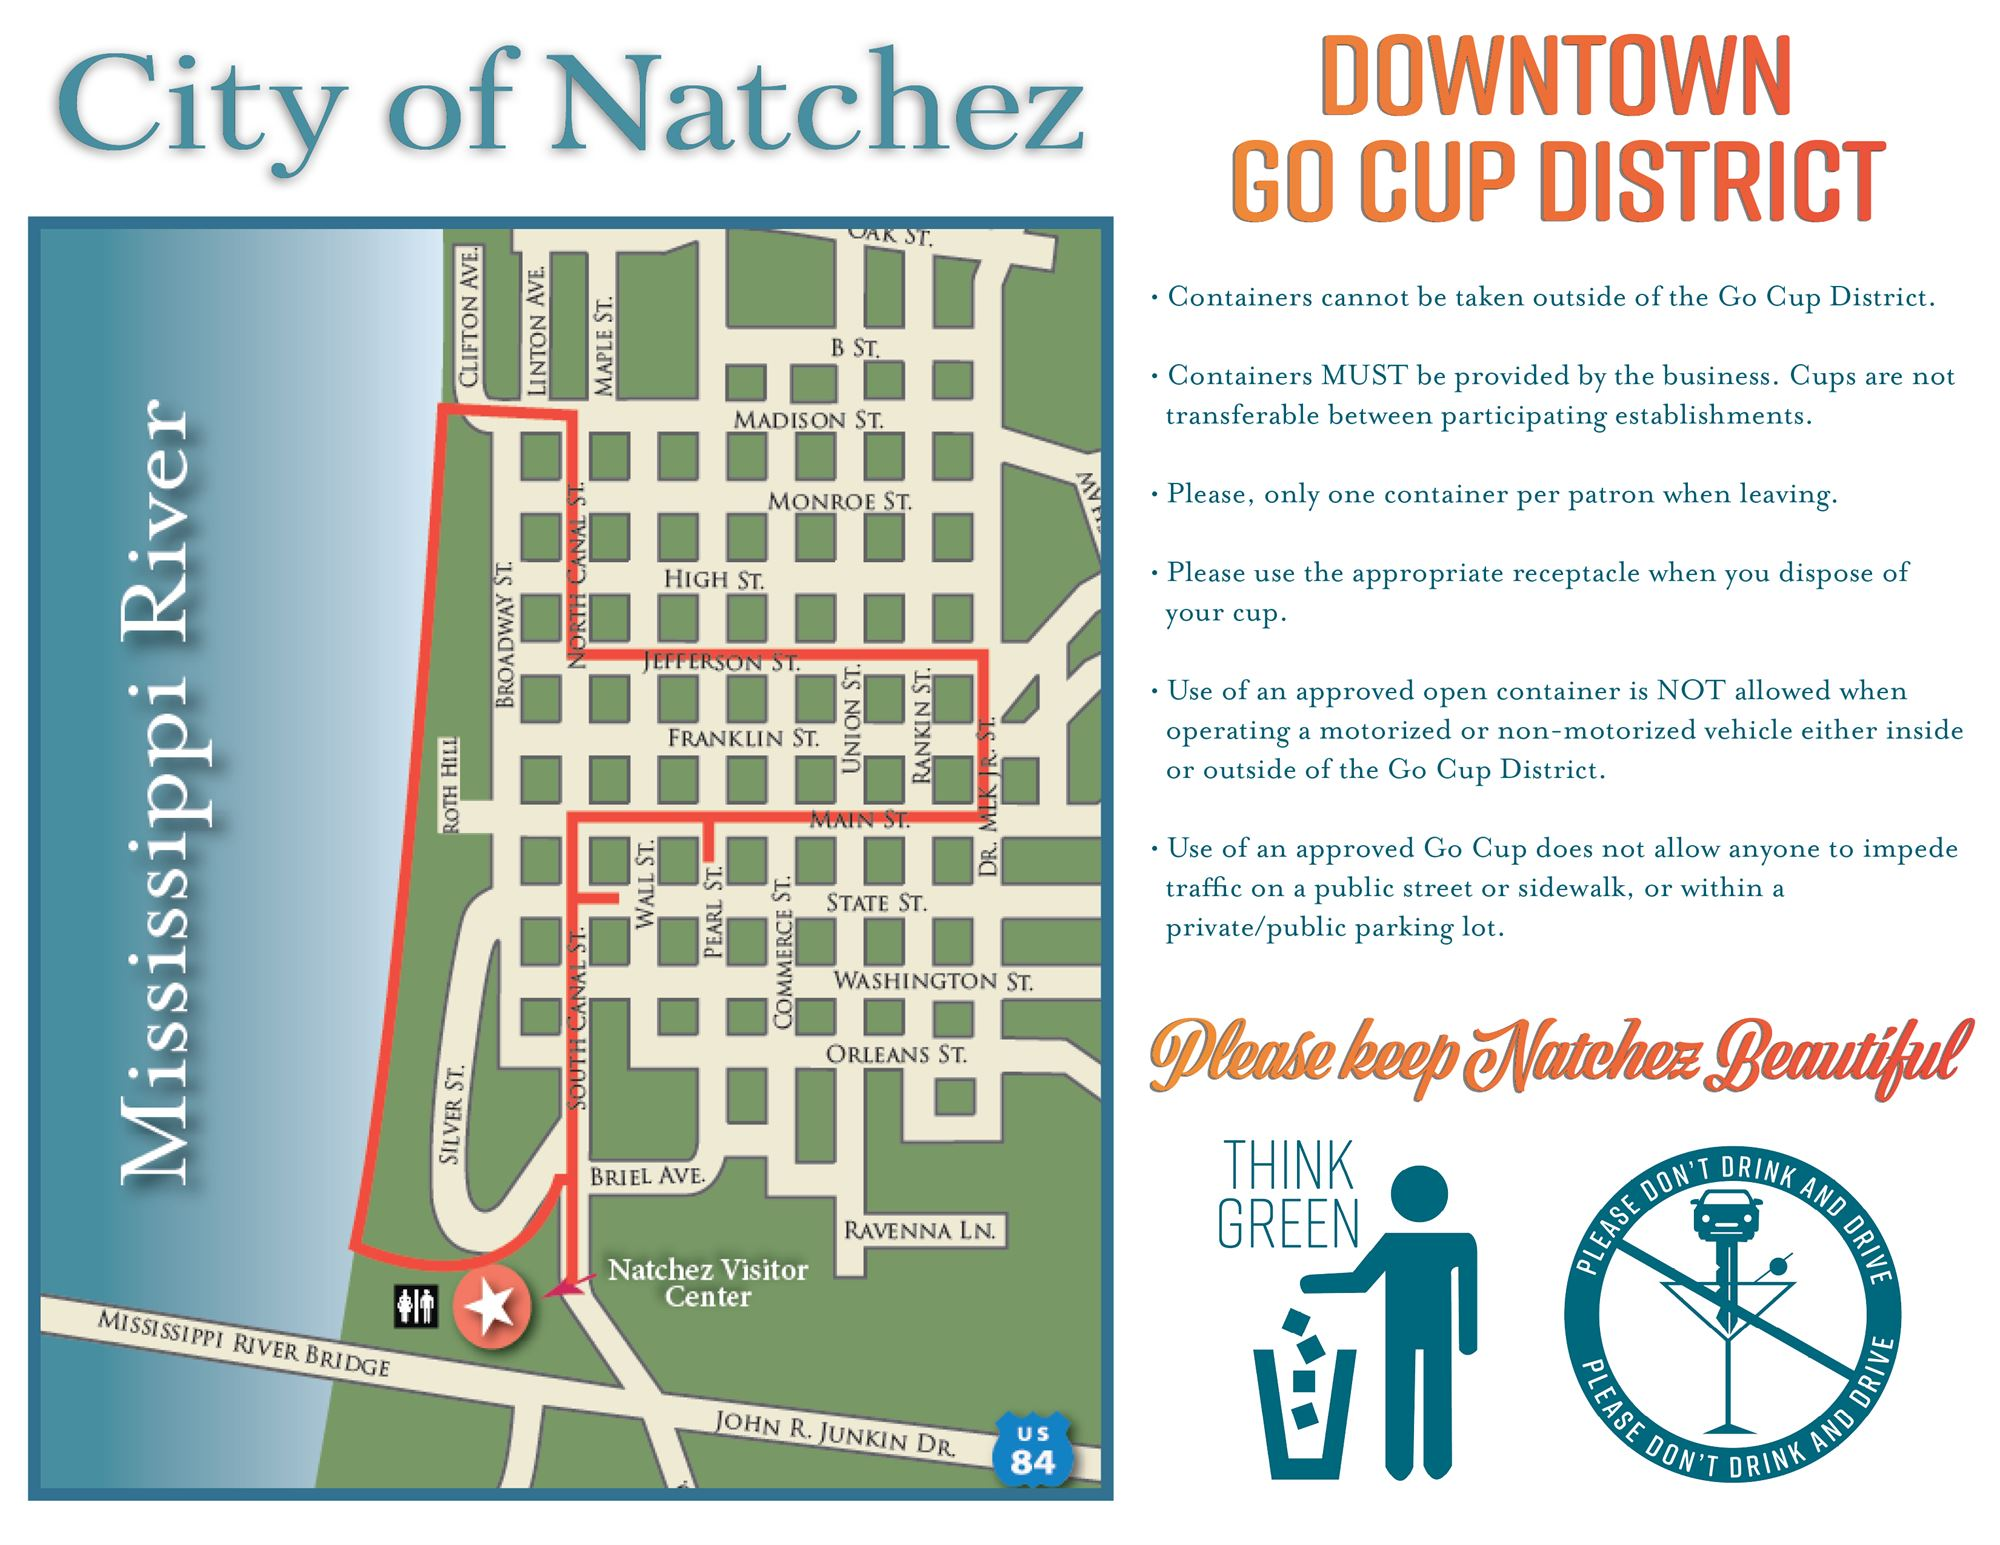 Natchez Go Cup District on map of downtown cleveland ms, map plantation natchez mississippi, map of downtown hattiesburg ms, map of la state line-ms, map of downtown jim thorpe, downtown vicksburg ms, map of downtown starkville ms, map of blue ridge parkway and skyline drive, map of downtown columbus ms, map of downtown jackson ms, map of downtown biloxi ms, old downtown tupelo ms, map of downtown san luis obispo, map of downtown oxford ms, map of downtown las vegas strip, map of natchez la, map of downtown summerlin, map of downtown tupelo ms, map of downtown cabo san lucas, map of natchez parkway,